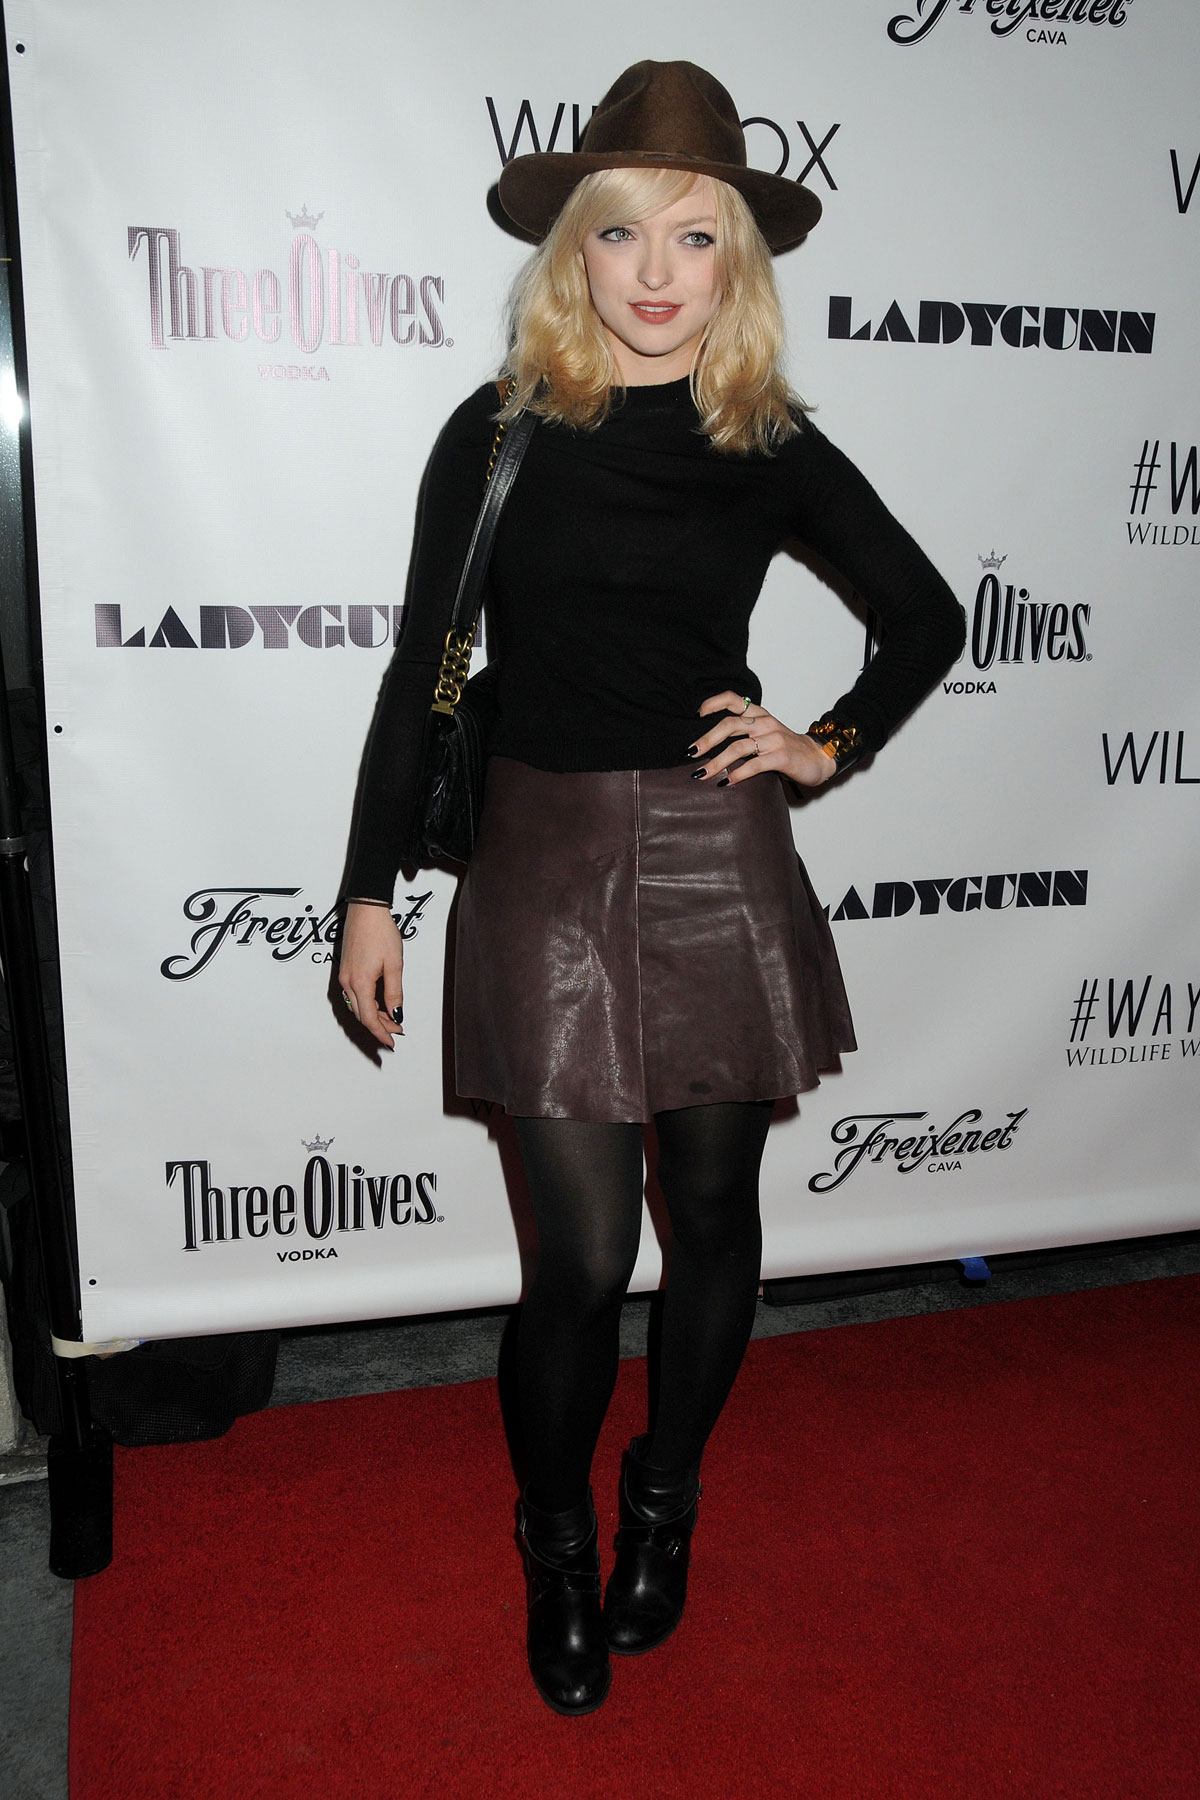 Francesca Eastwood attends Wayke Up Fundraiser